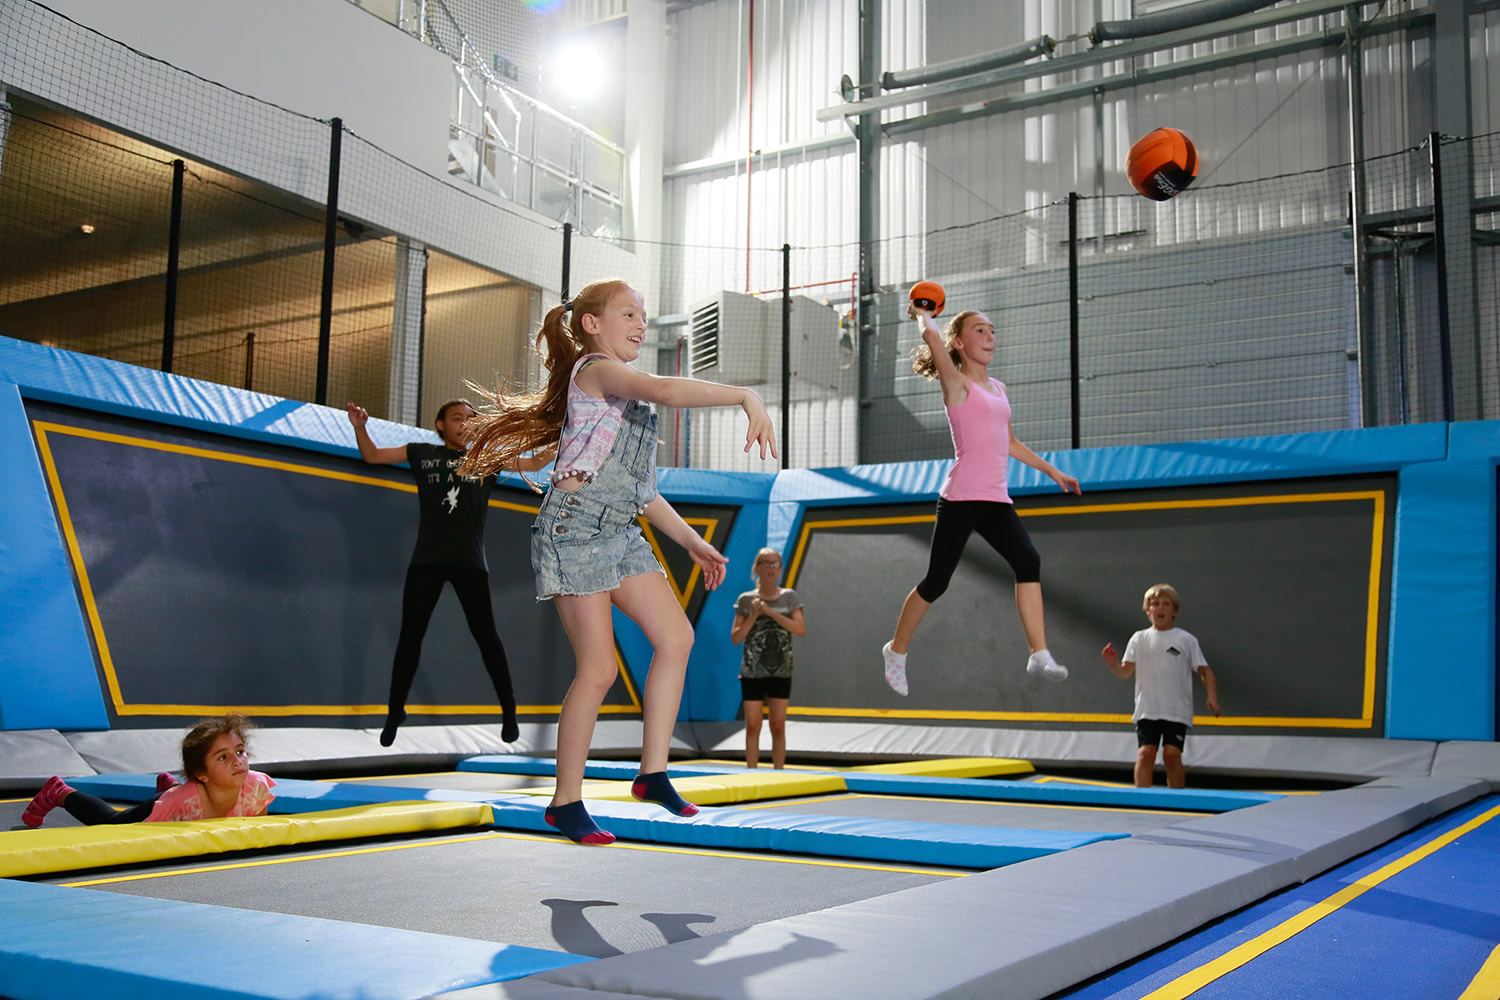 Oxygen Freejumping Attraction Leeds West Yorkshire